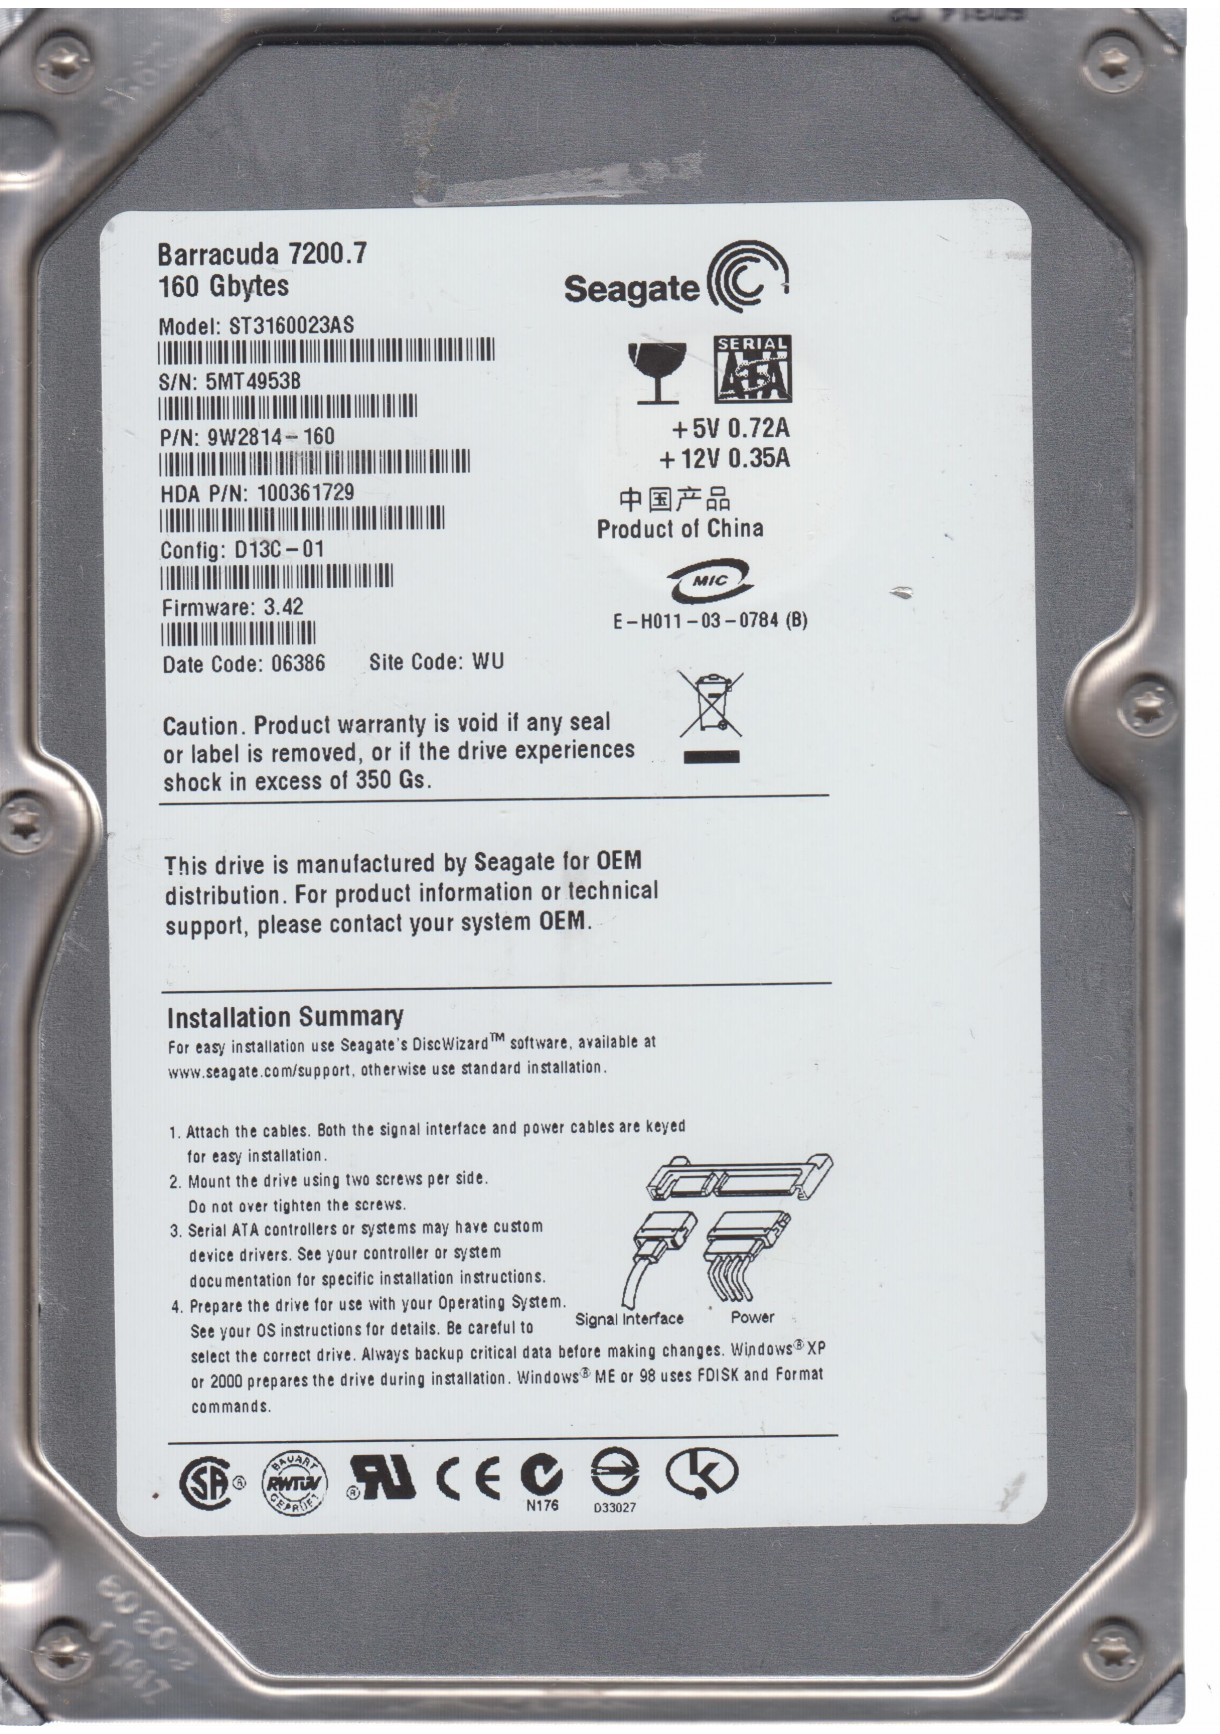 SEAGATE ST3160023AS FW3.42 160GB 3.5